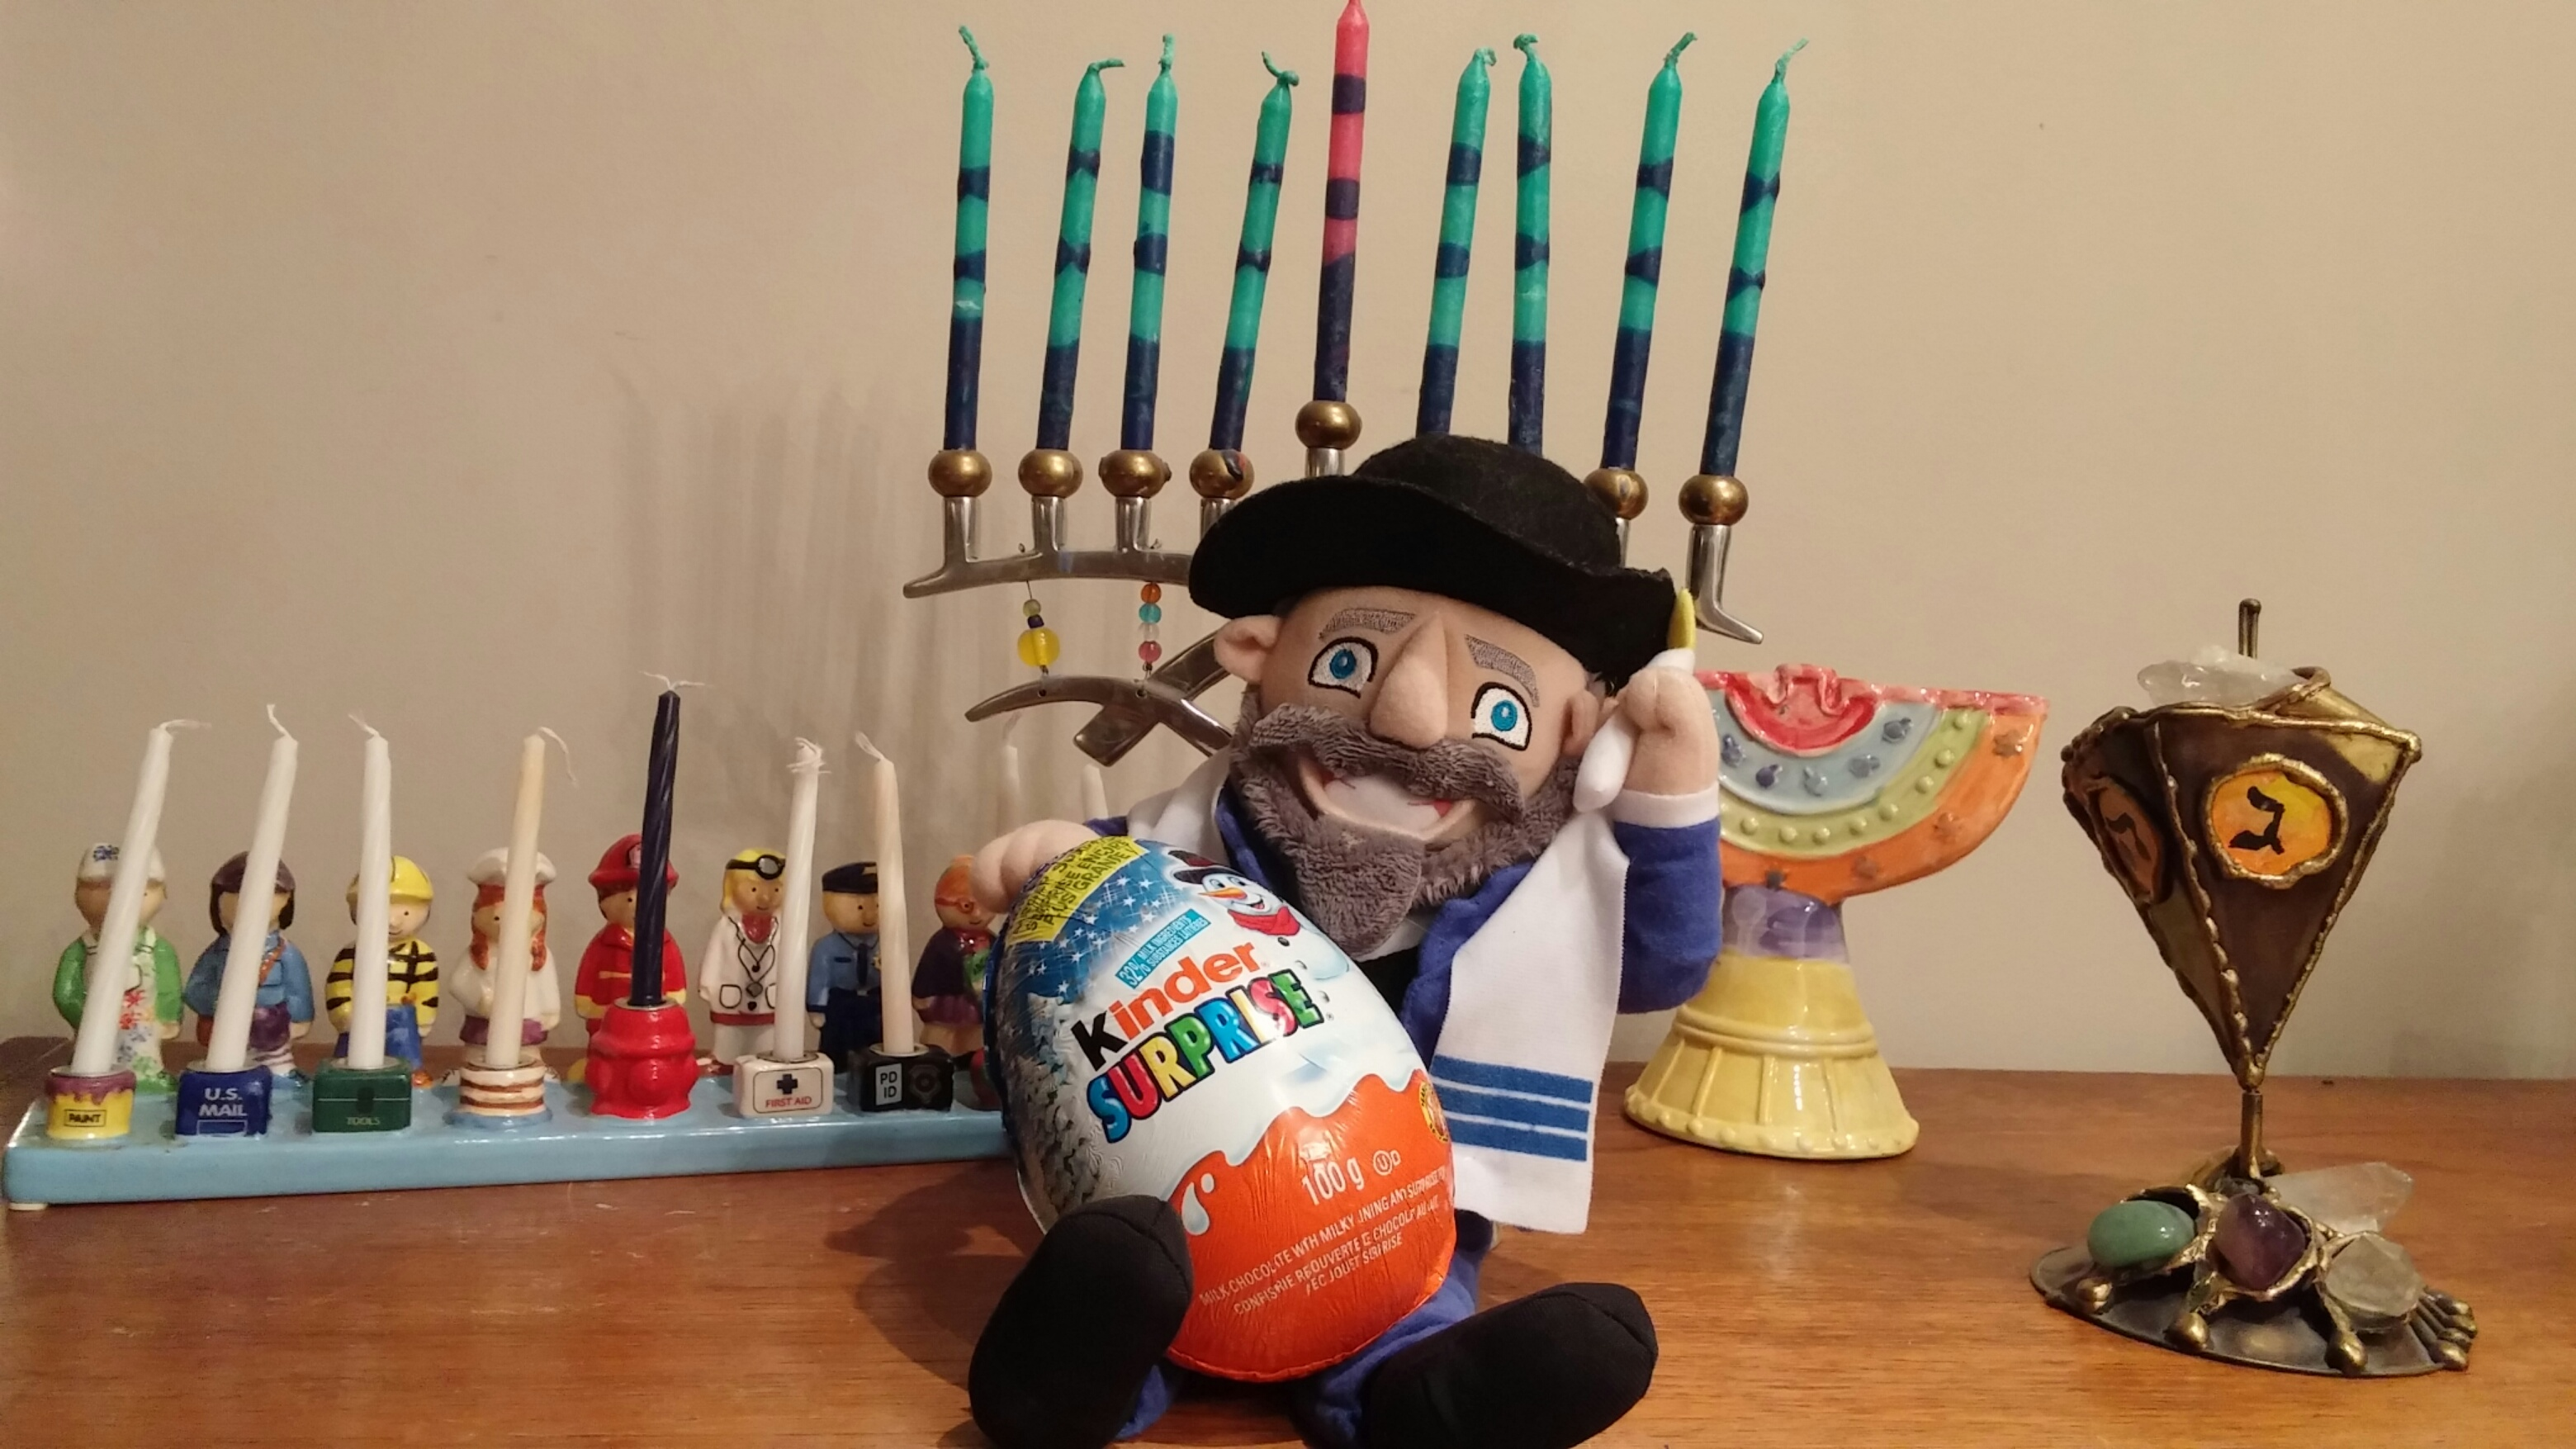 Celebrating Hanukkah and traditions